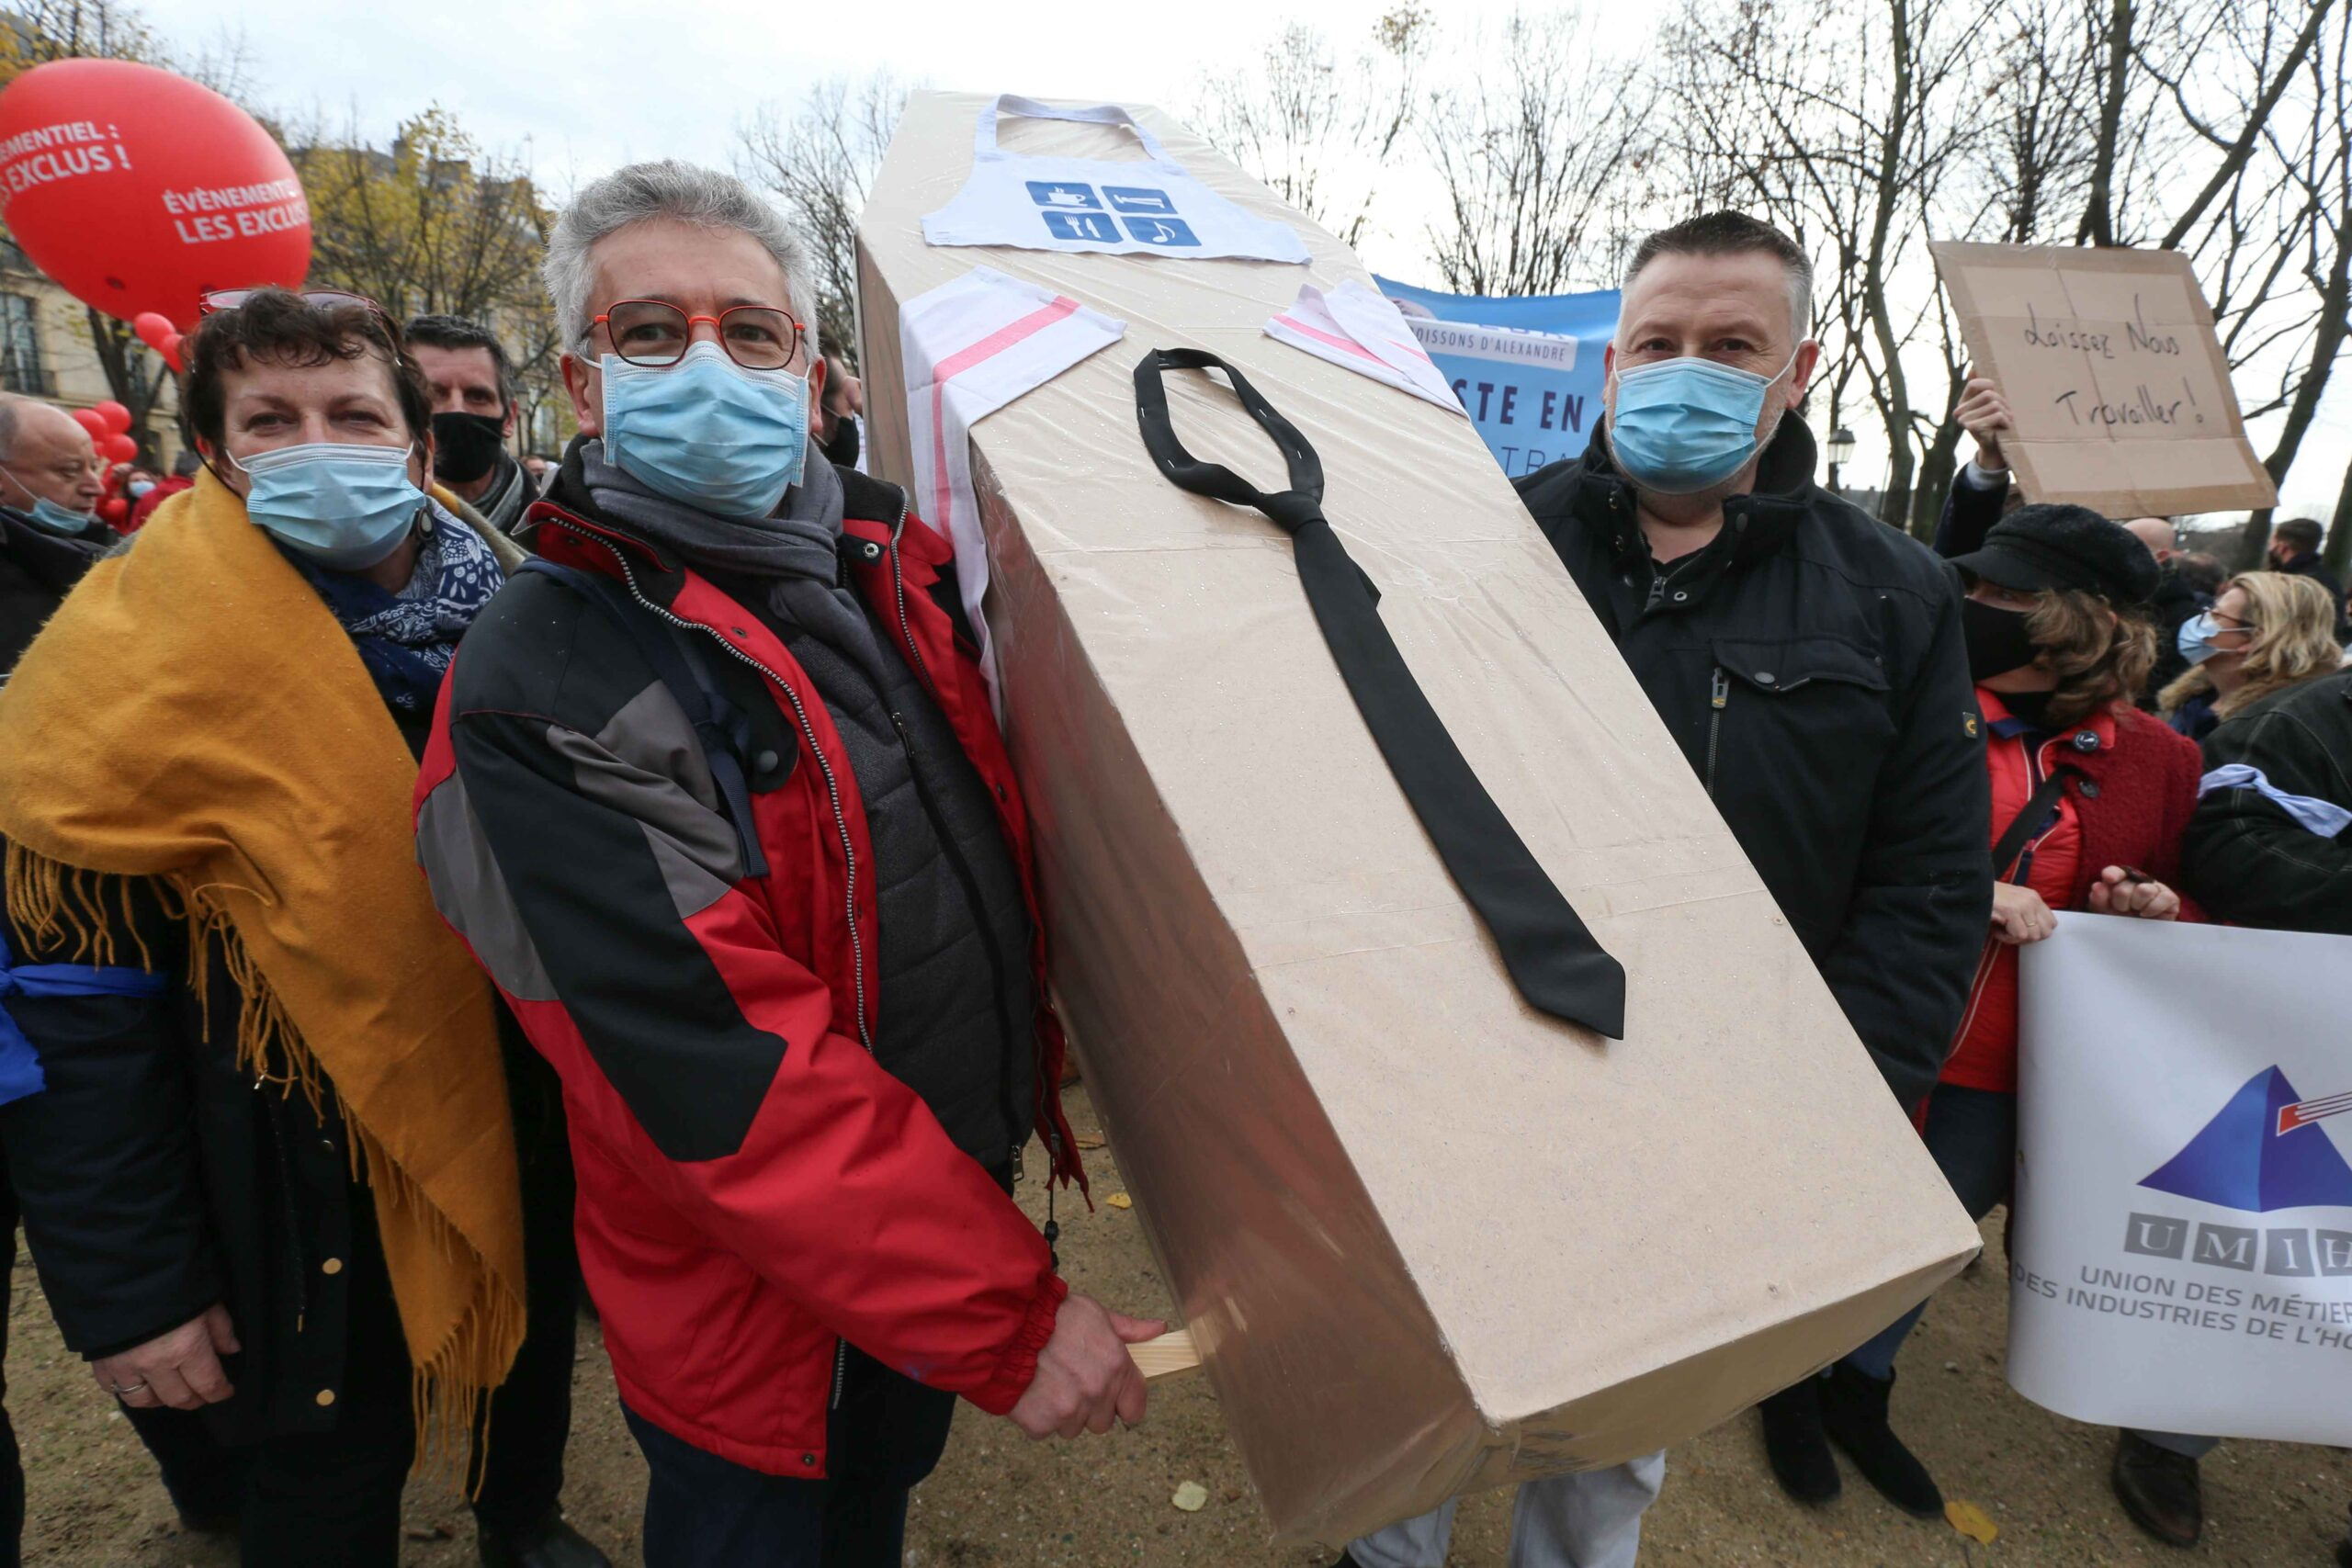 Protesters hold a mock coffin on December 14, 2020 in Paris during a demonstration of hotel and restaurant owners as well as tourism professionals to demand their businesses to reopen amidst the Covid-19 pandemic, caused by the novel coronavirus. The placa